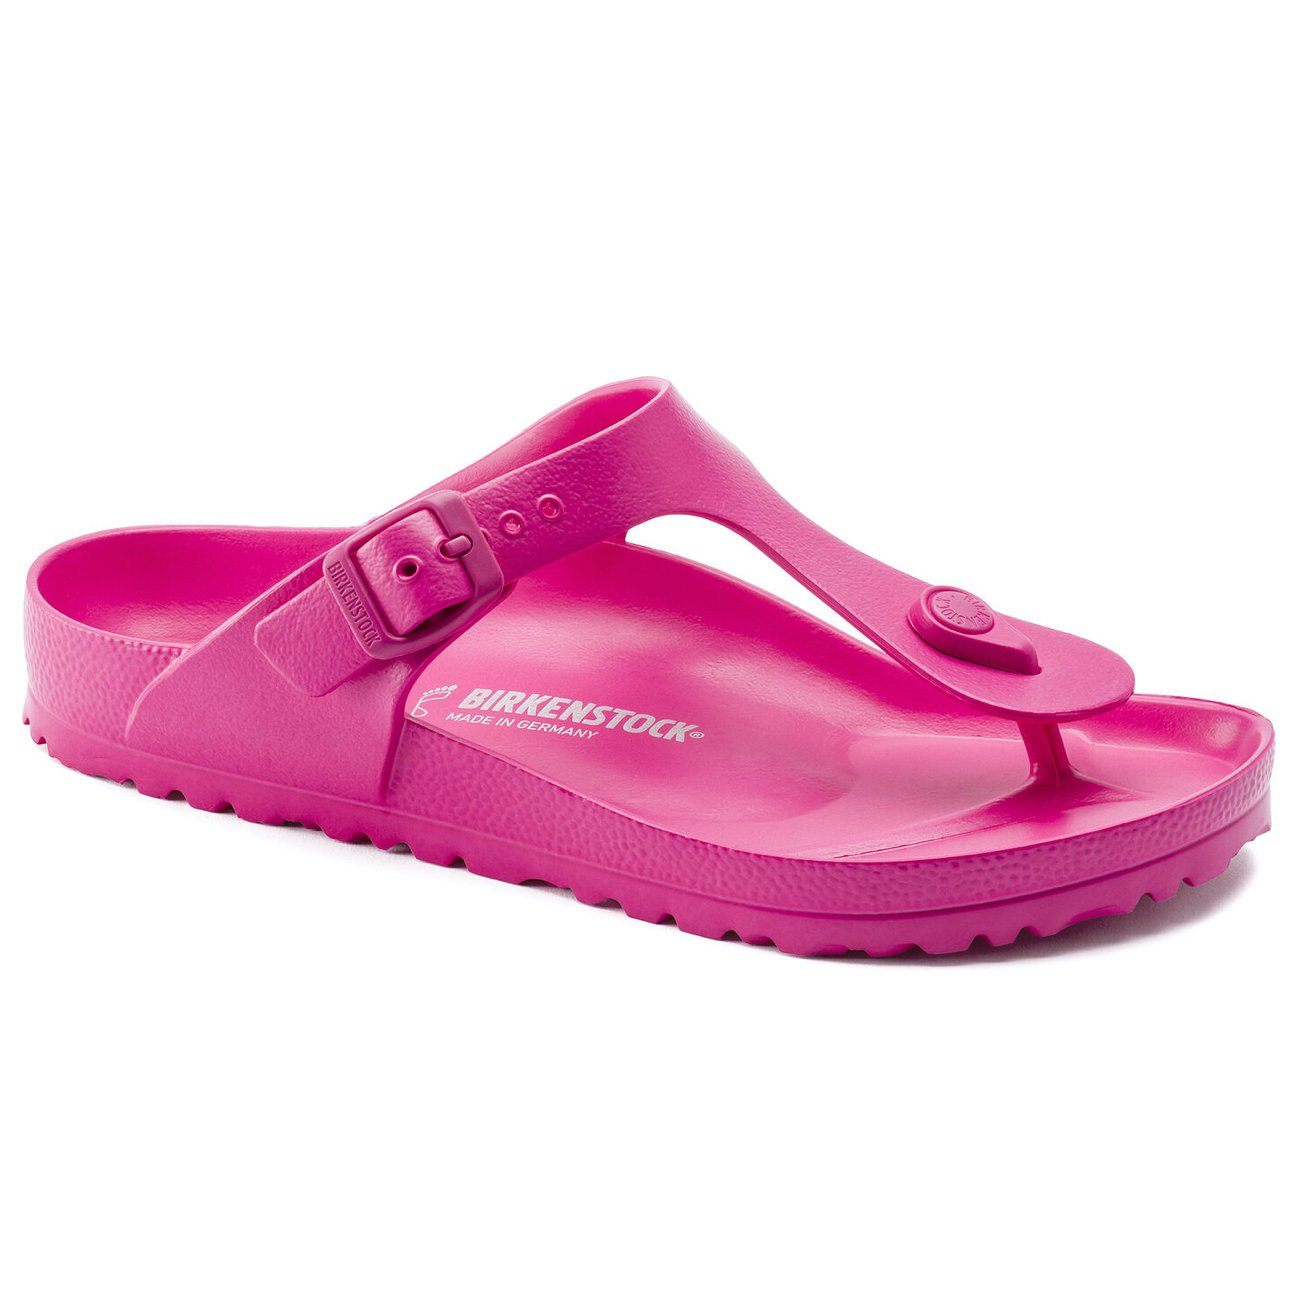 Birkenstock Classic, Gizeh EVA, Regular Fit, Beetroot Purple Sandals Birkenstock Classic Beetroot Purple 36